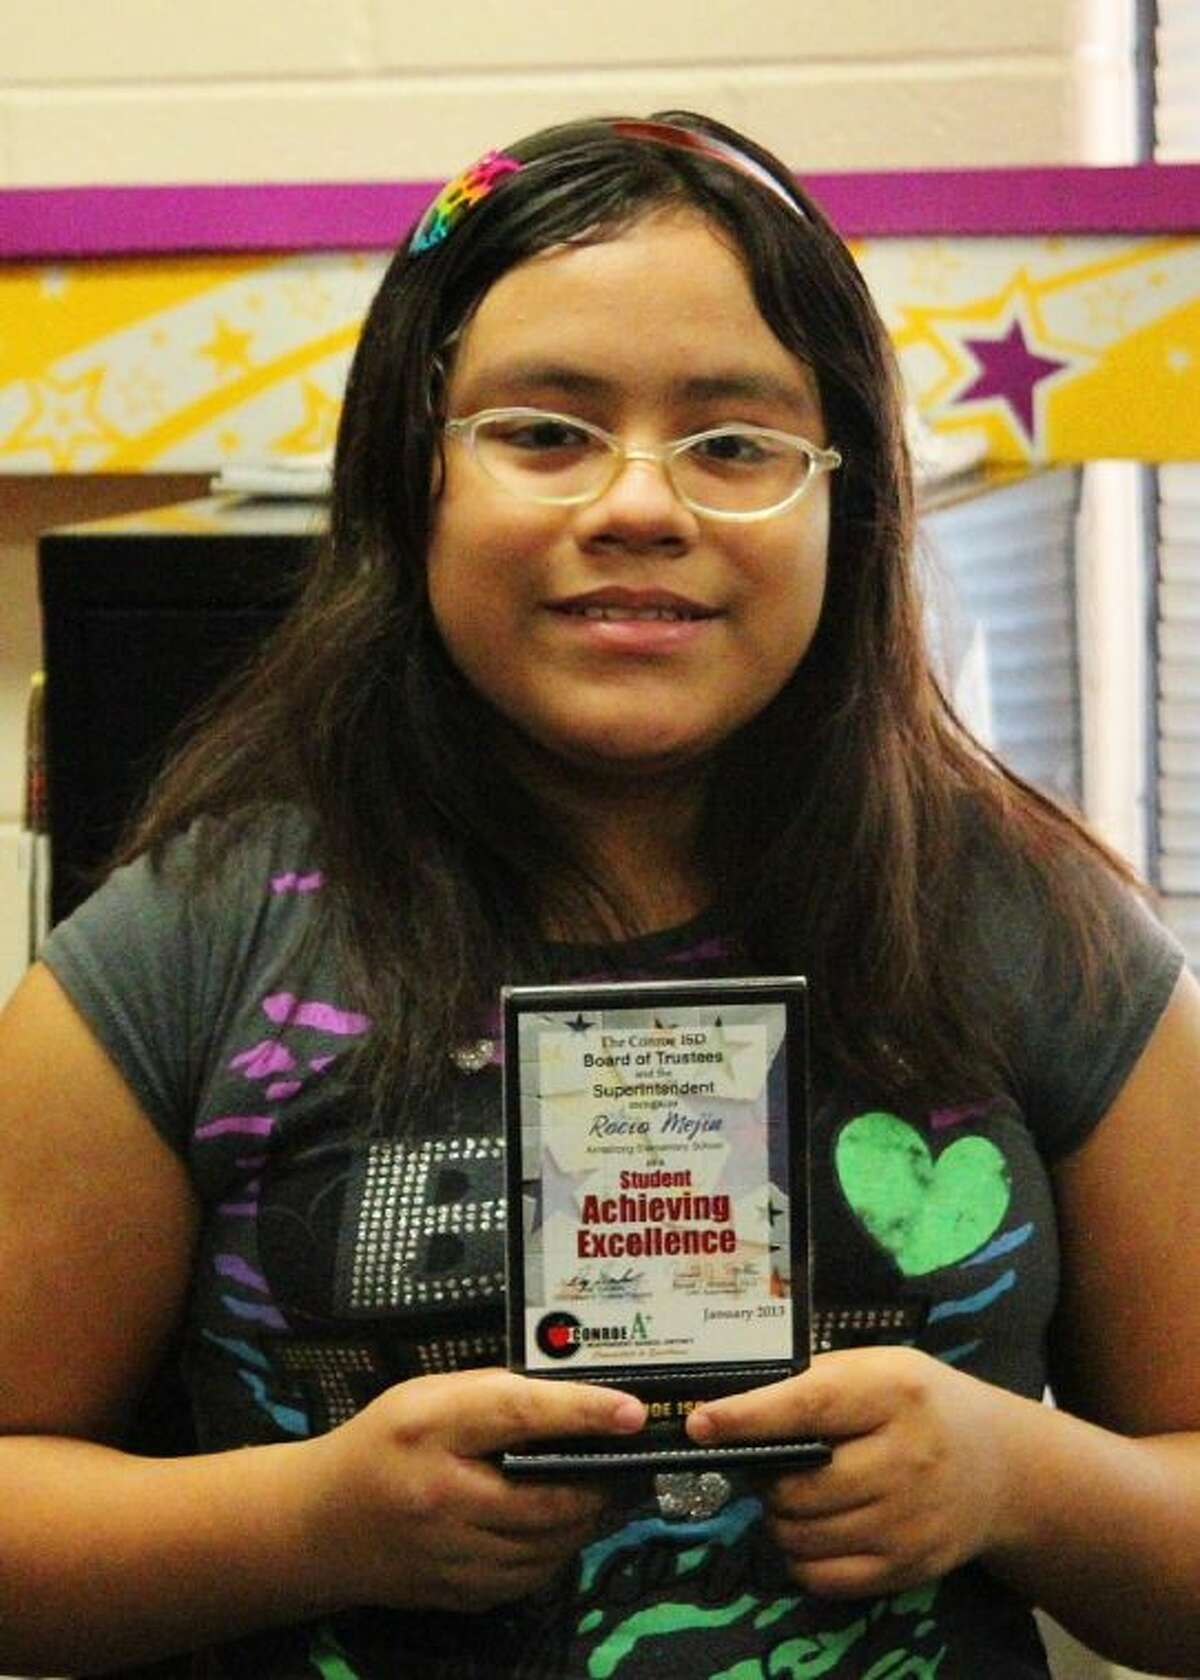 Conroe ISD recently recognized Rocio Mejia as Armstrong Elementary's Student Ambassa- dor.